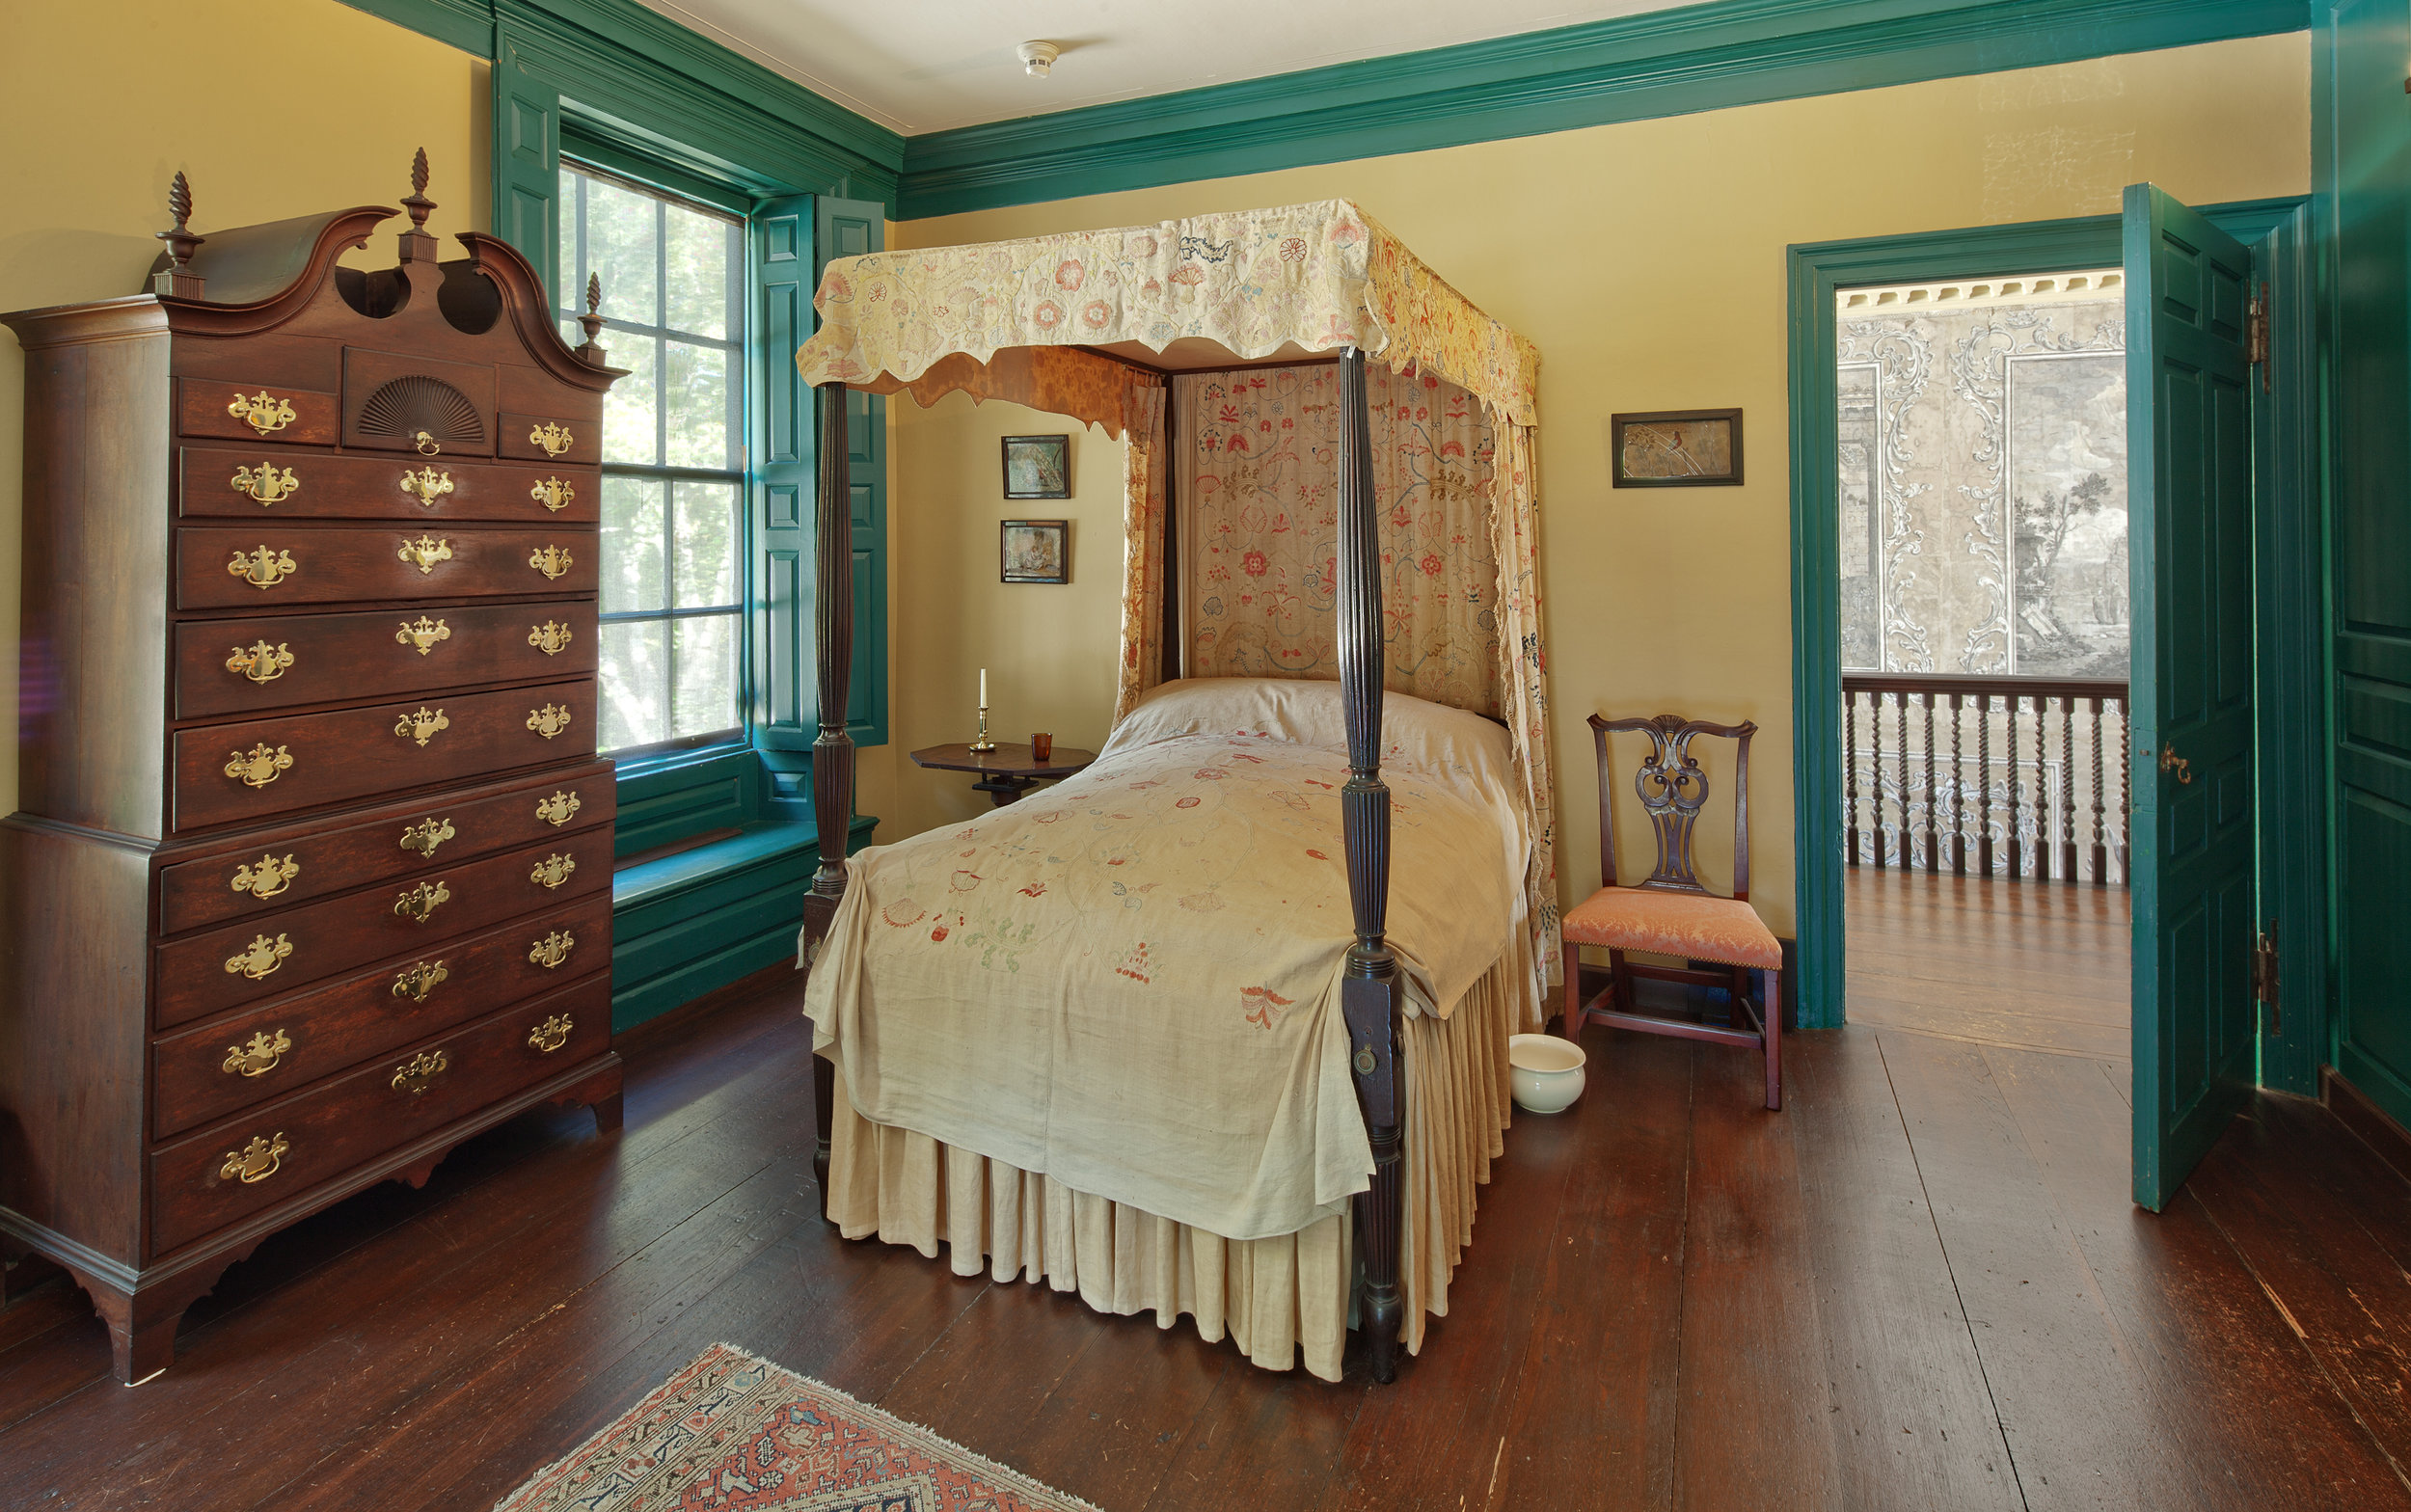 Bedroom Jeremiah Lee Mansion Marblehead MA New England style interior